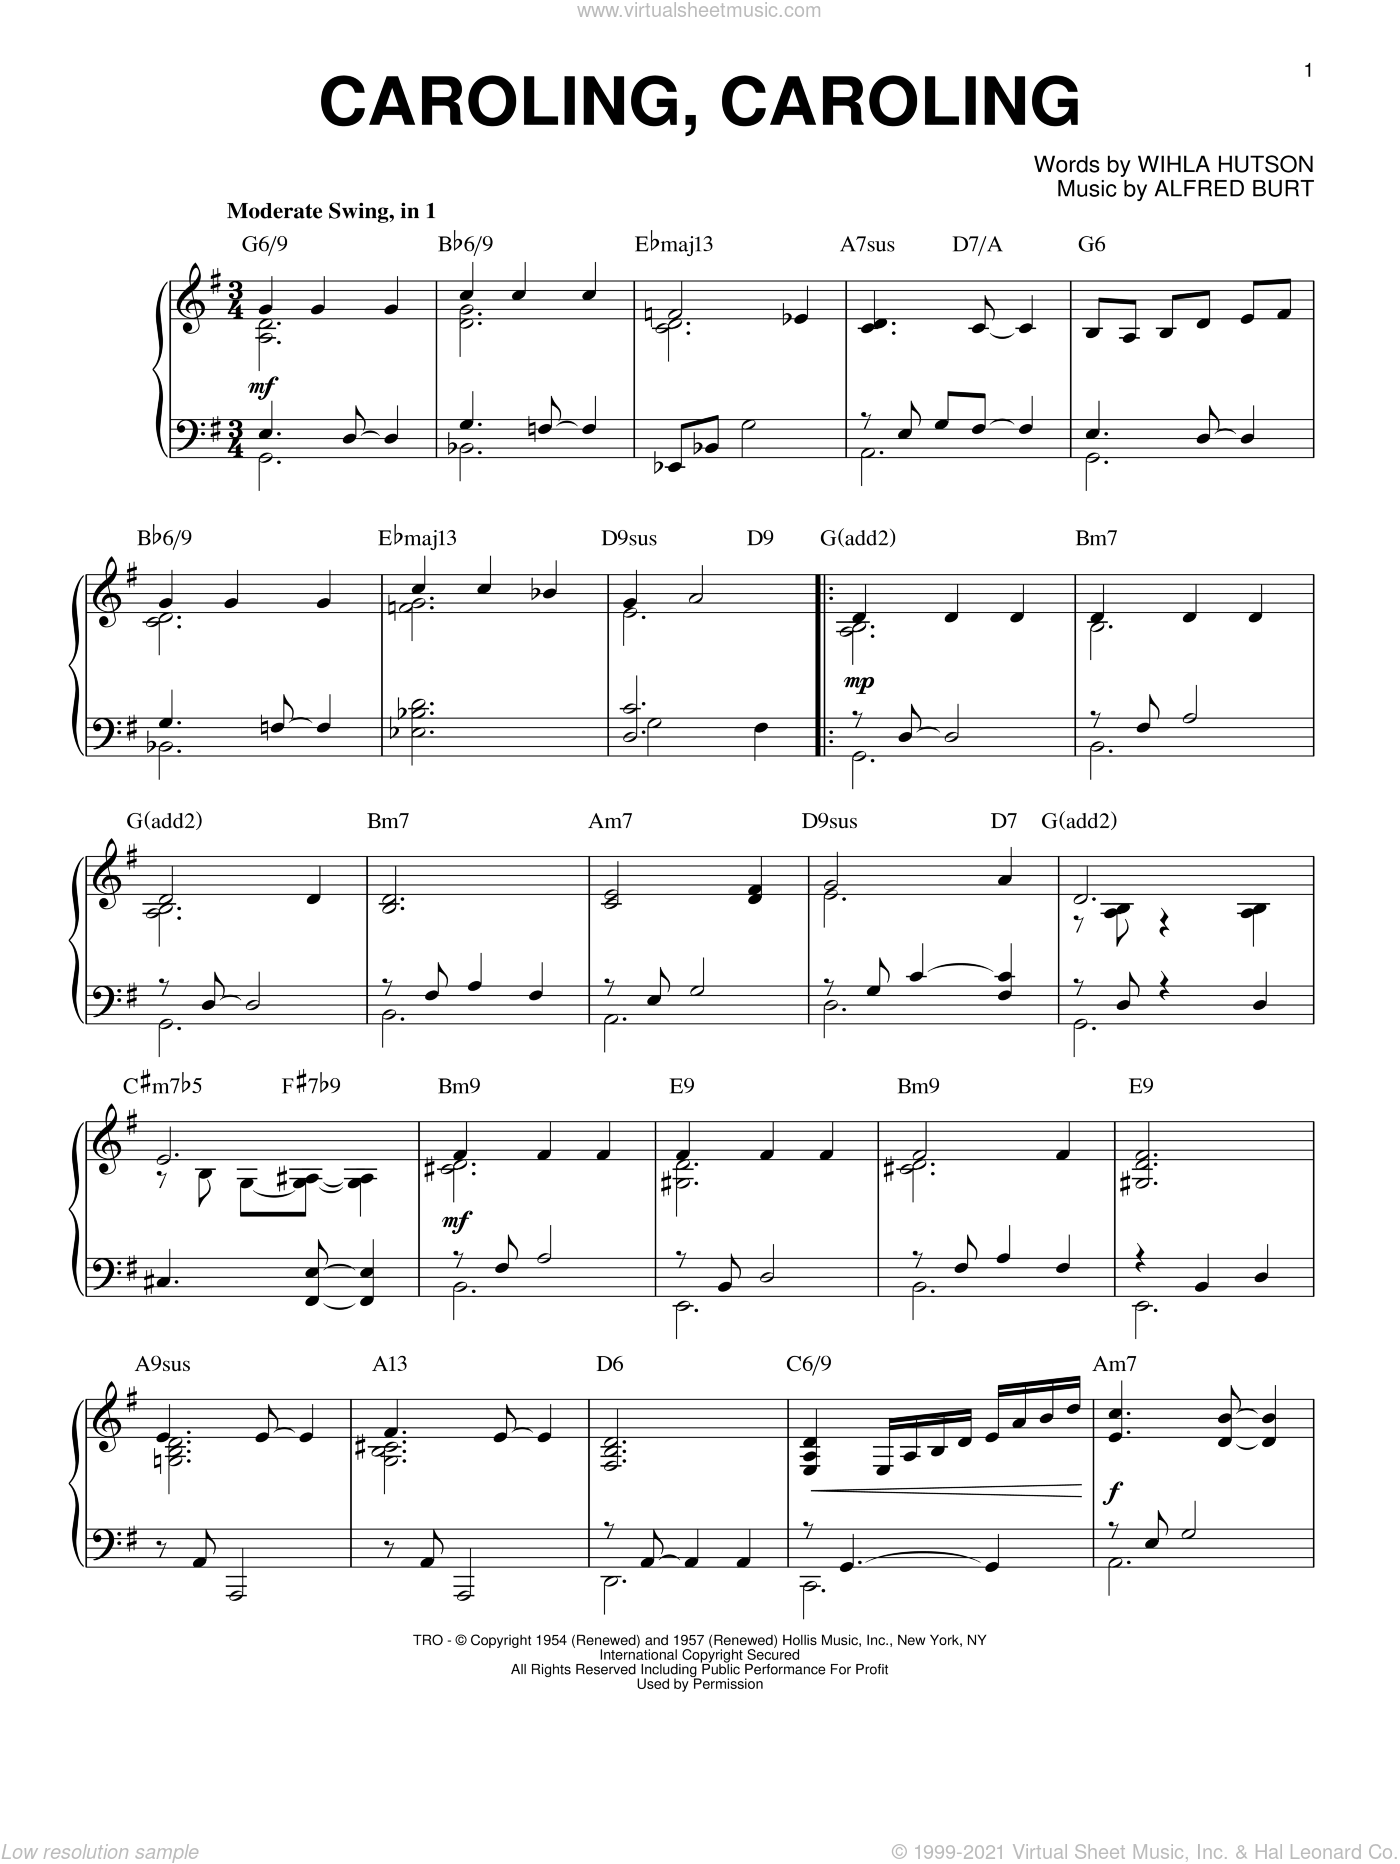 Caroling, Caroling sheet music for piano solo by Alfred Burt and Wihla Hutson, intermediate skill level